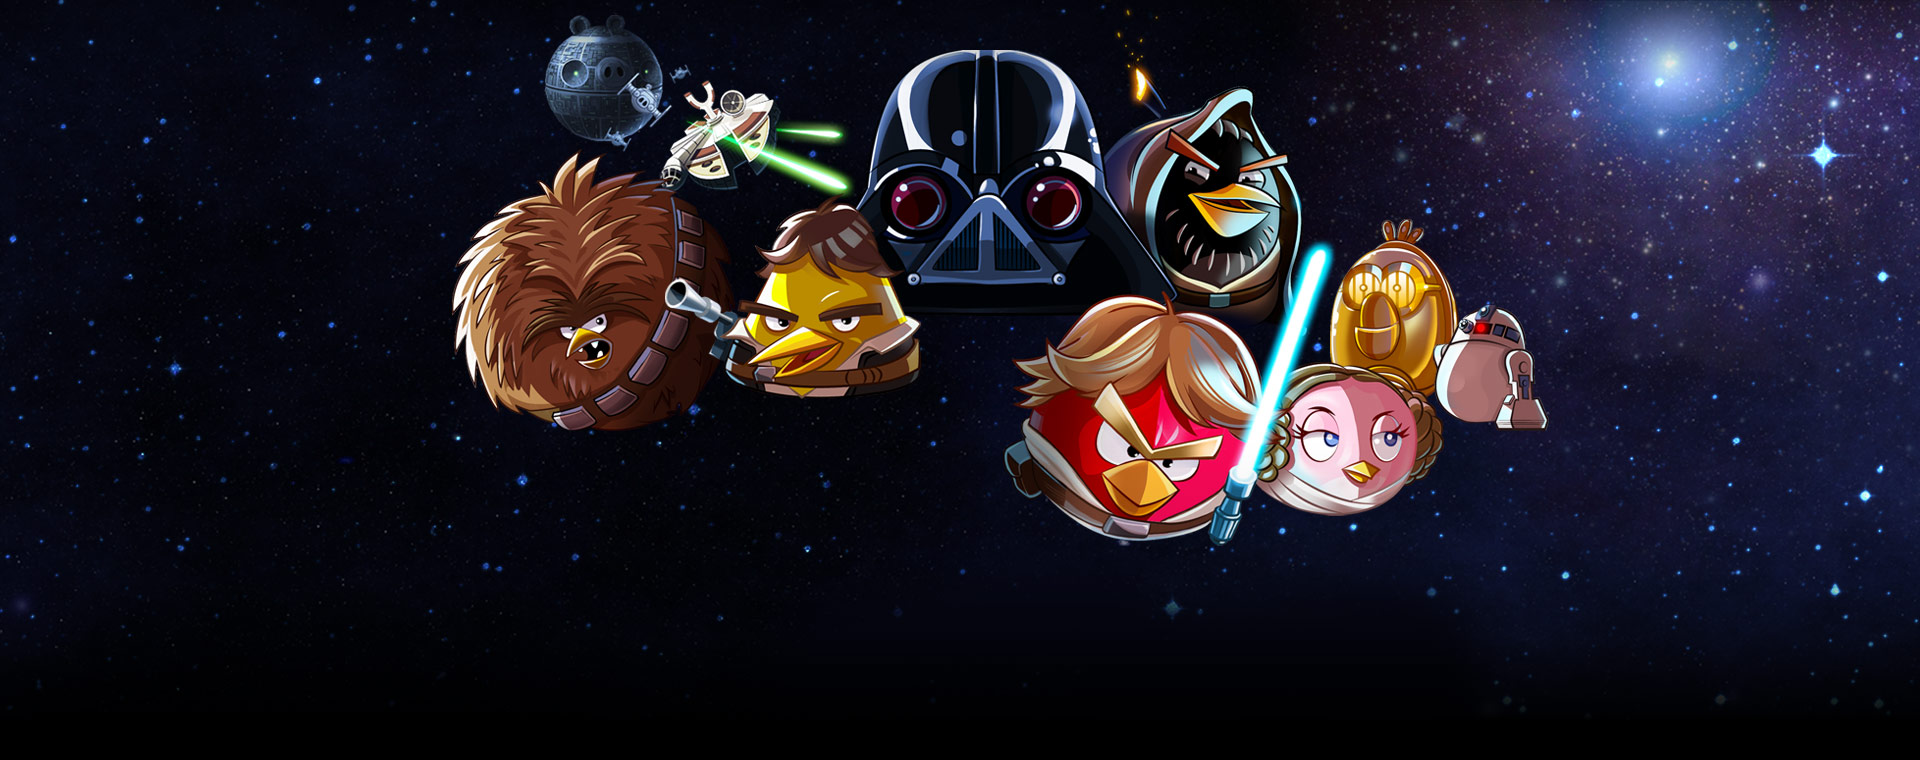 Angry Birds Star Wars wallpaper 7